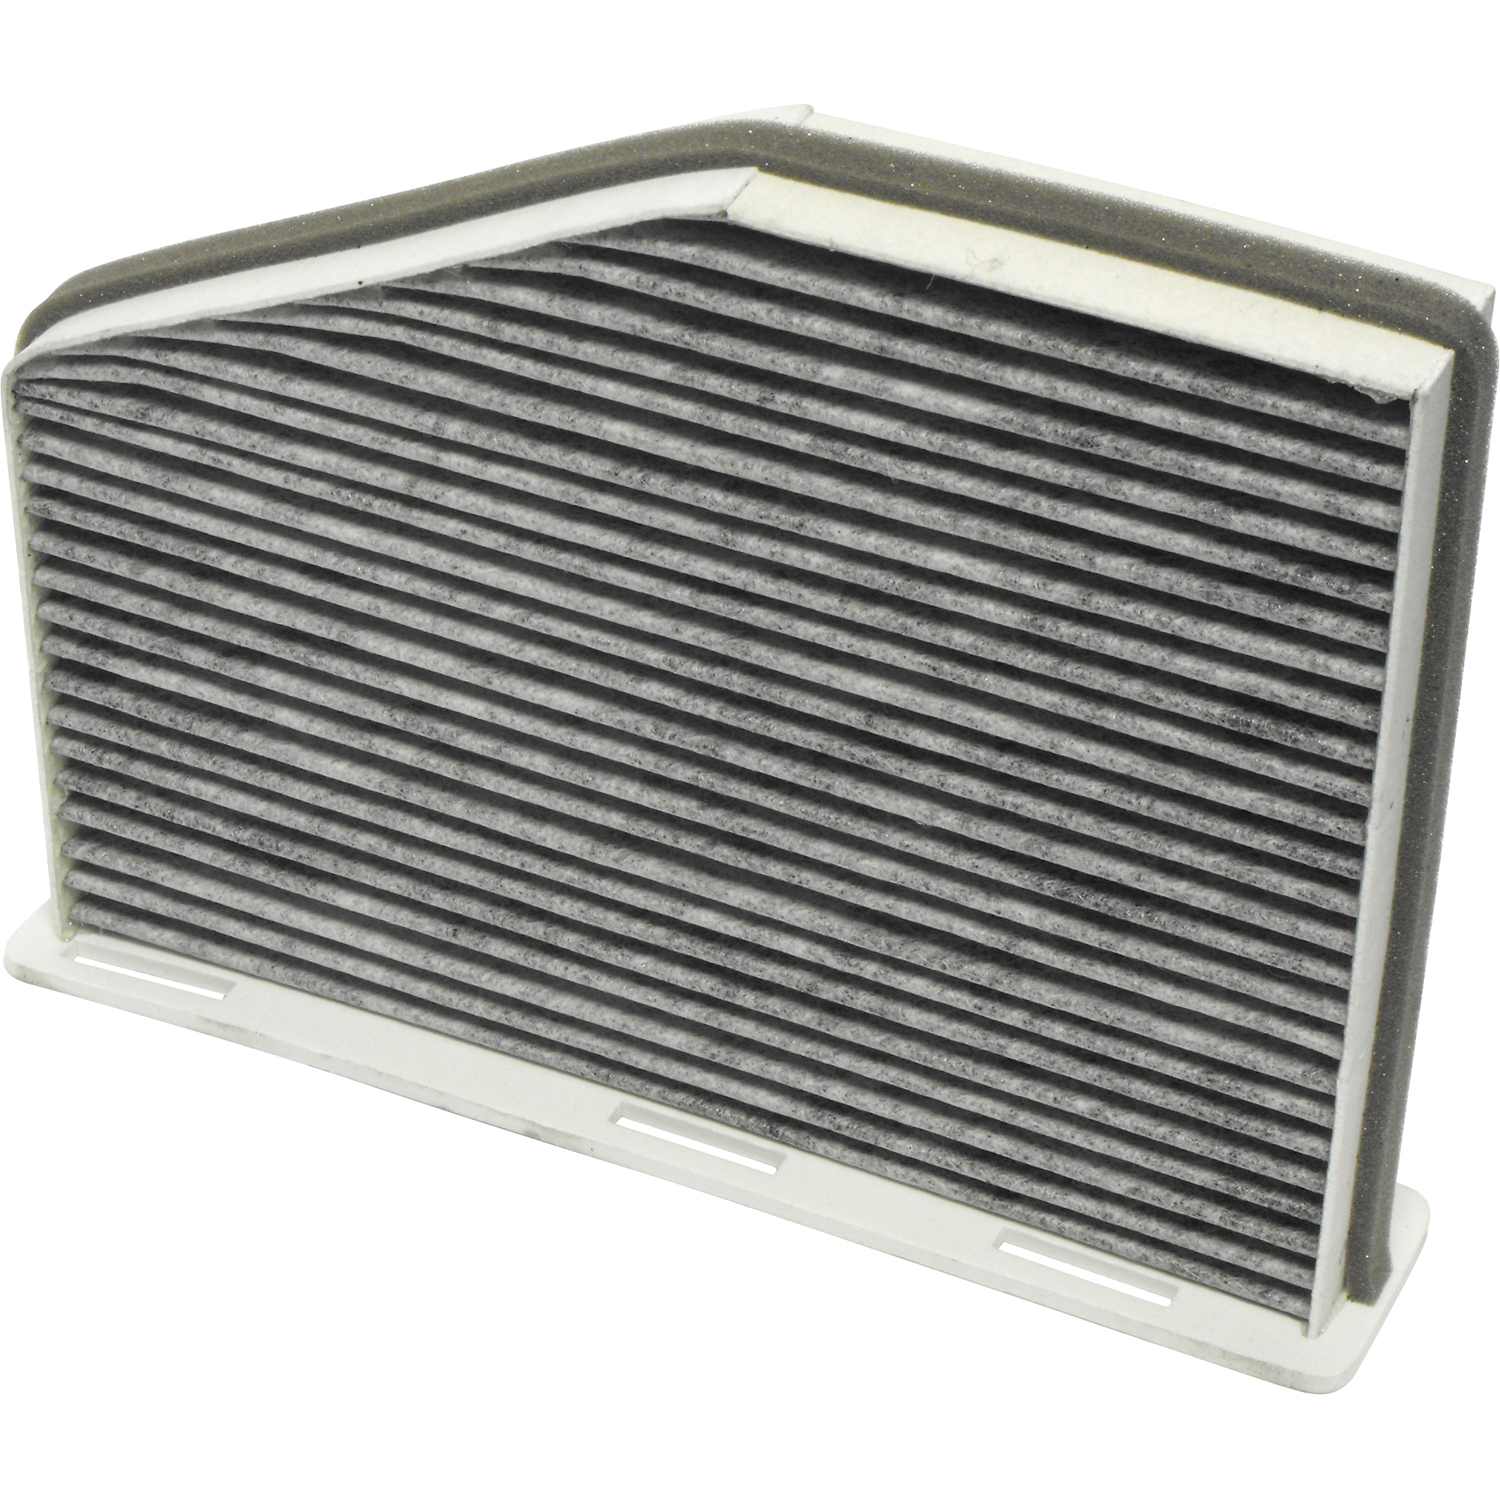 Charcoal Cabin Air Filter FI 1148C